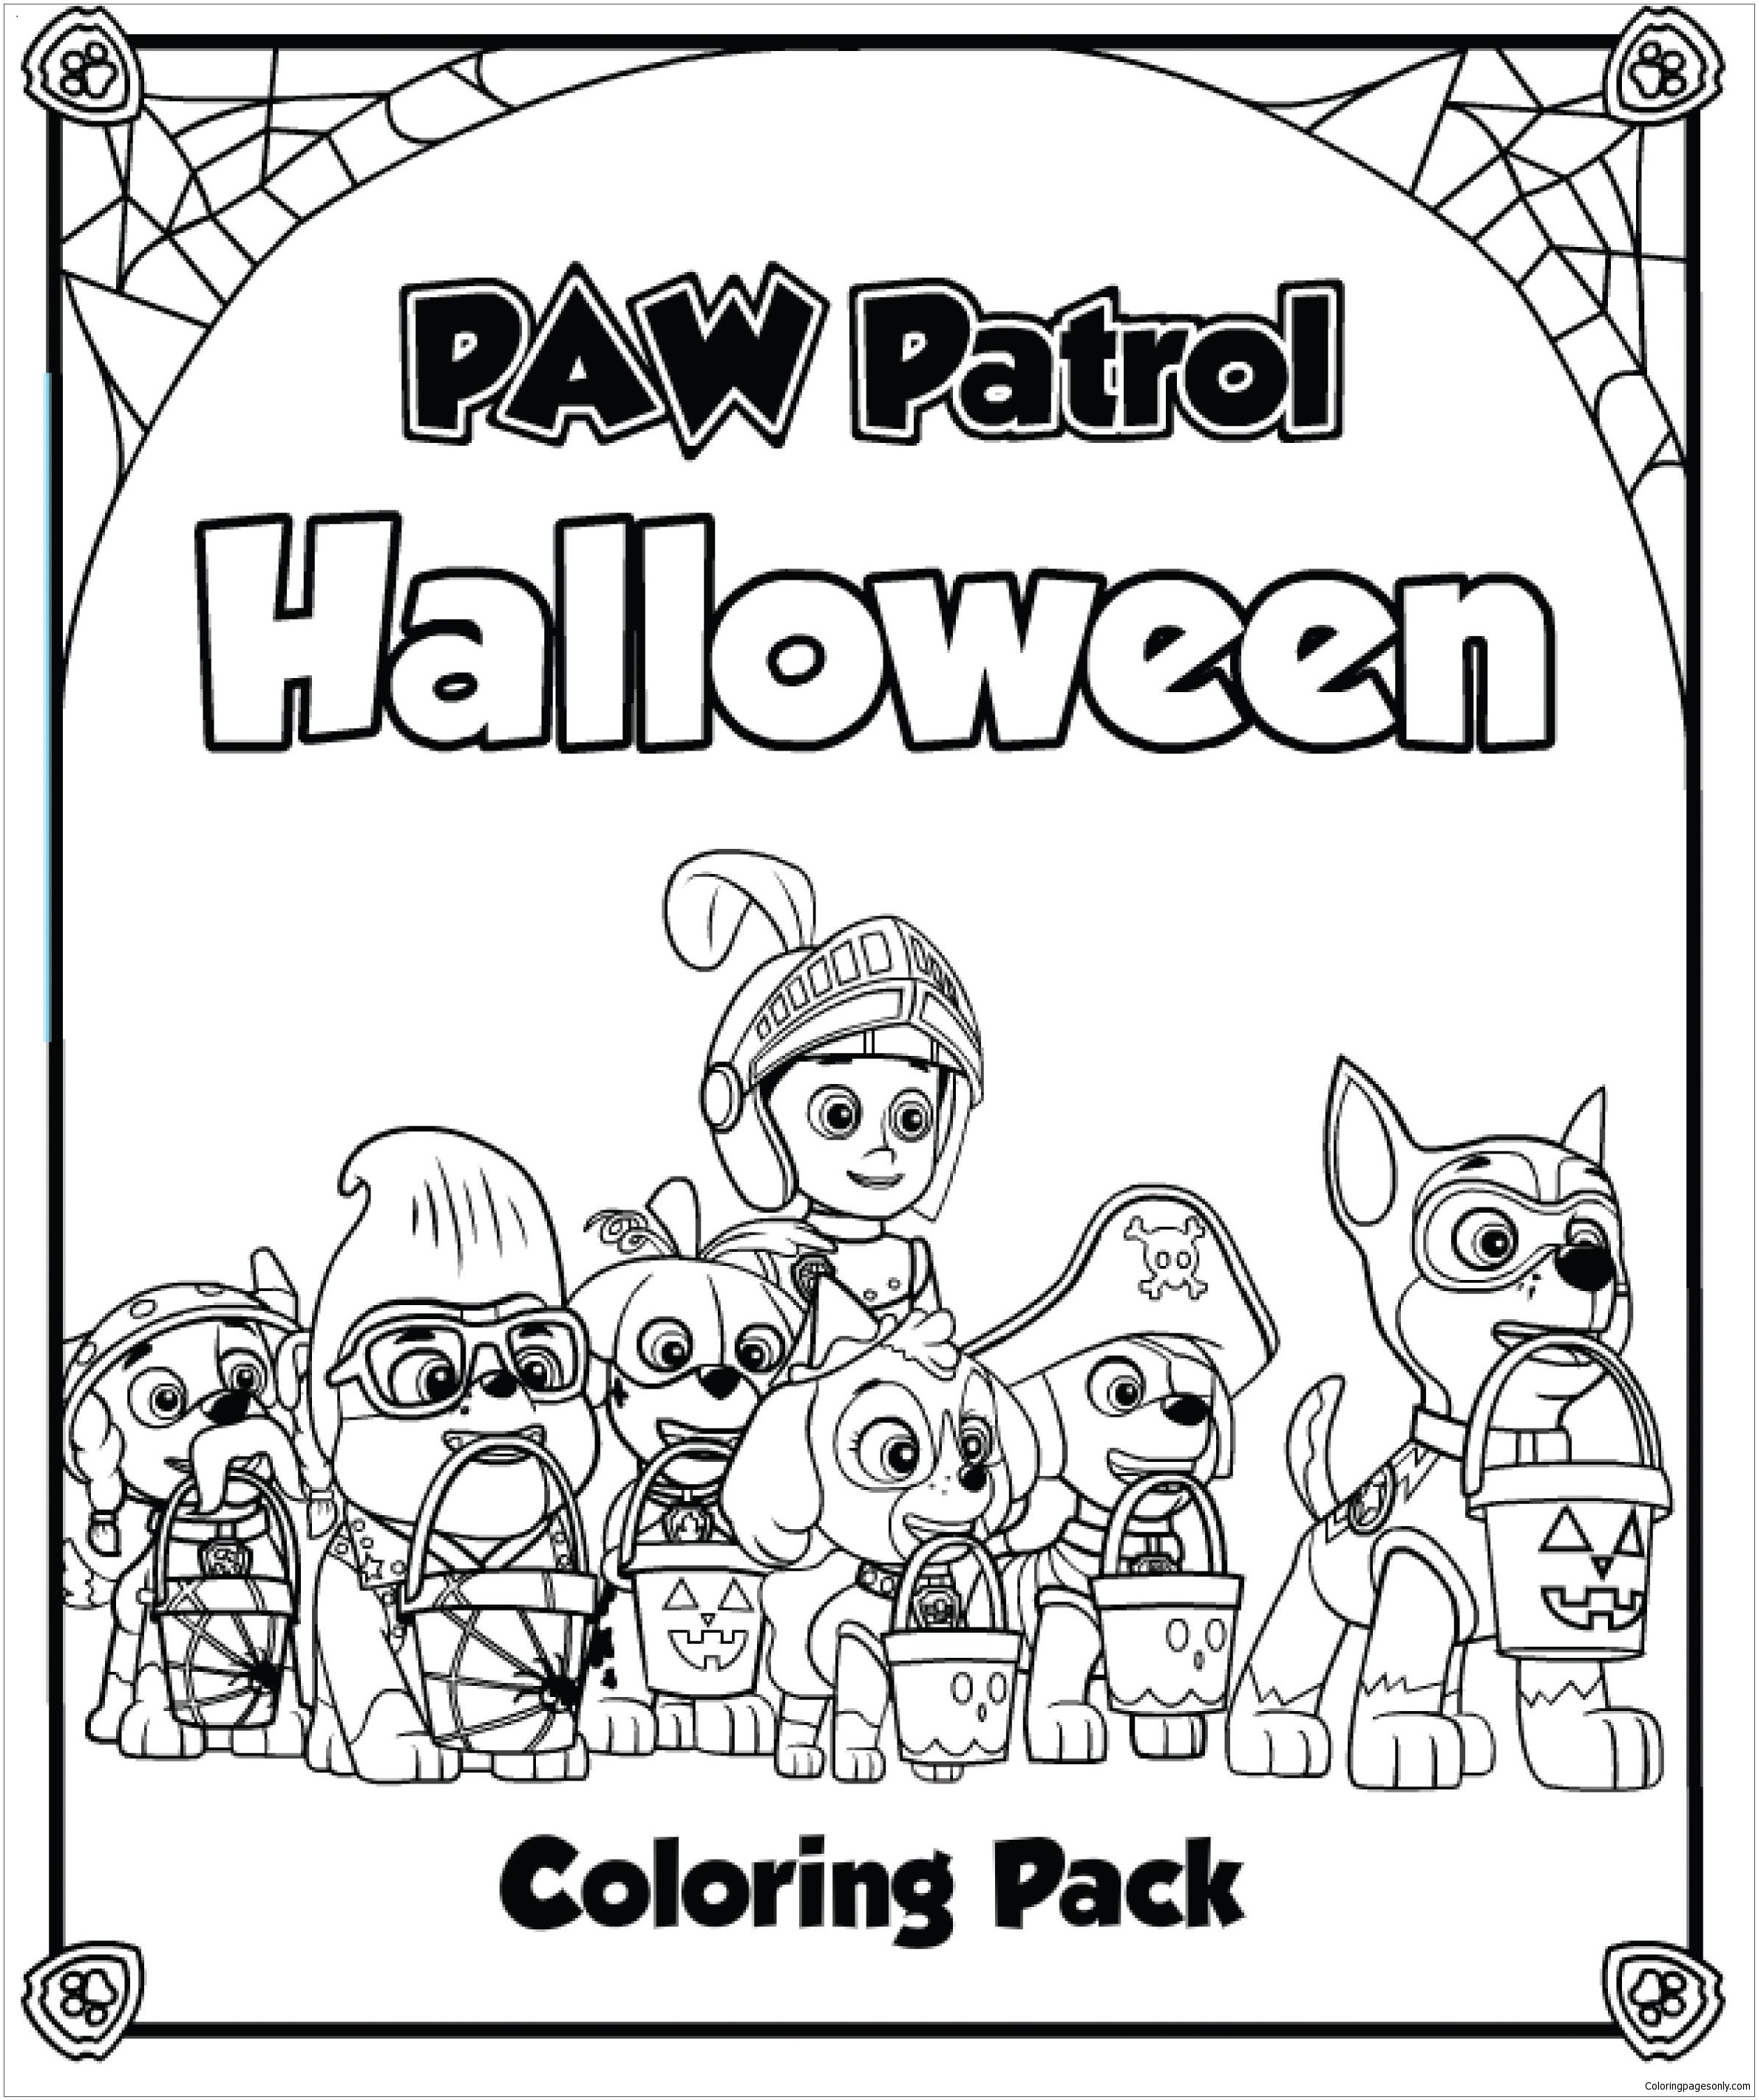 coloring pages for girls halloween - paw patrol halloween 2 coloring page free coloring pages